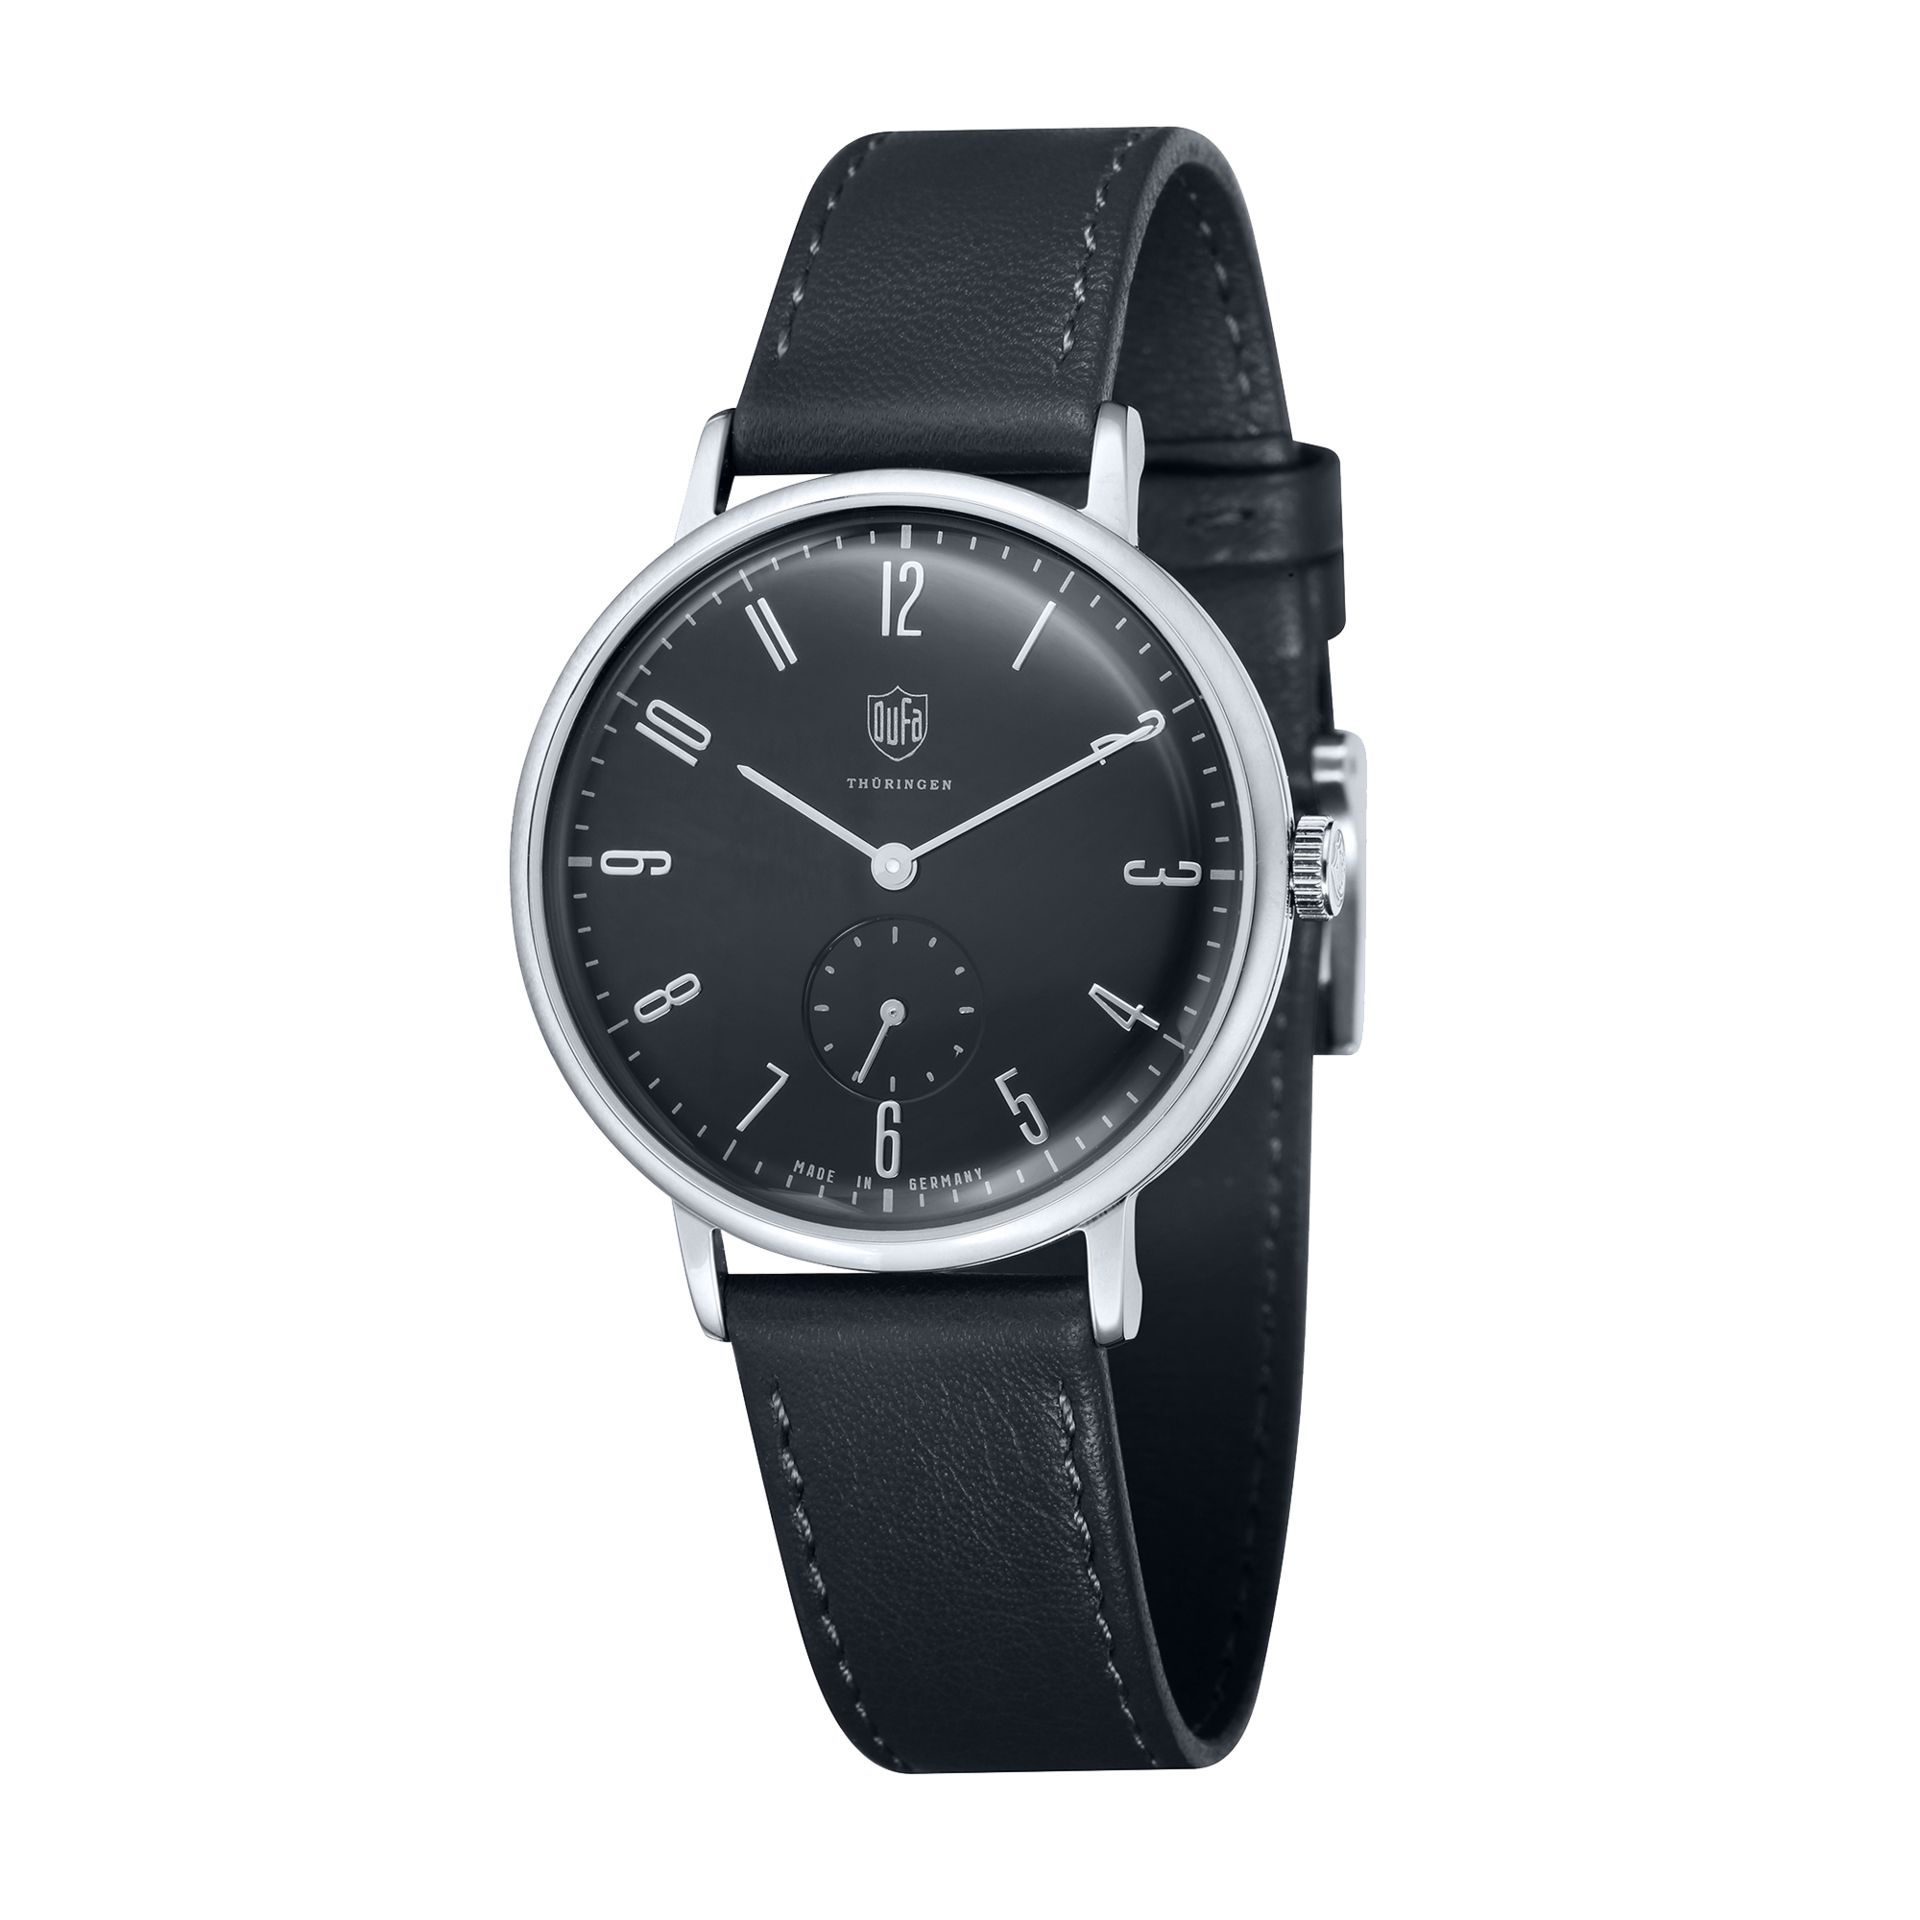 DuFa Gropius DF-9001-01 Japan Quartz Watch